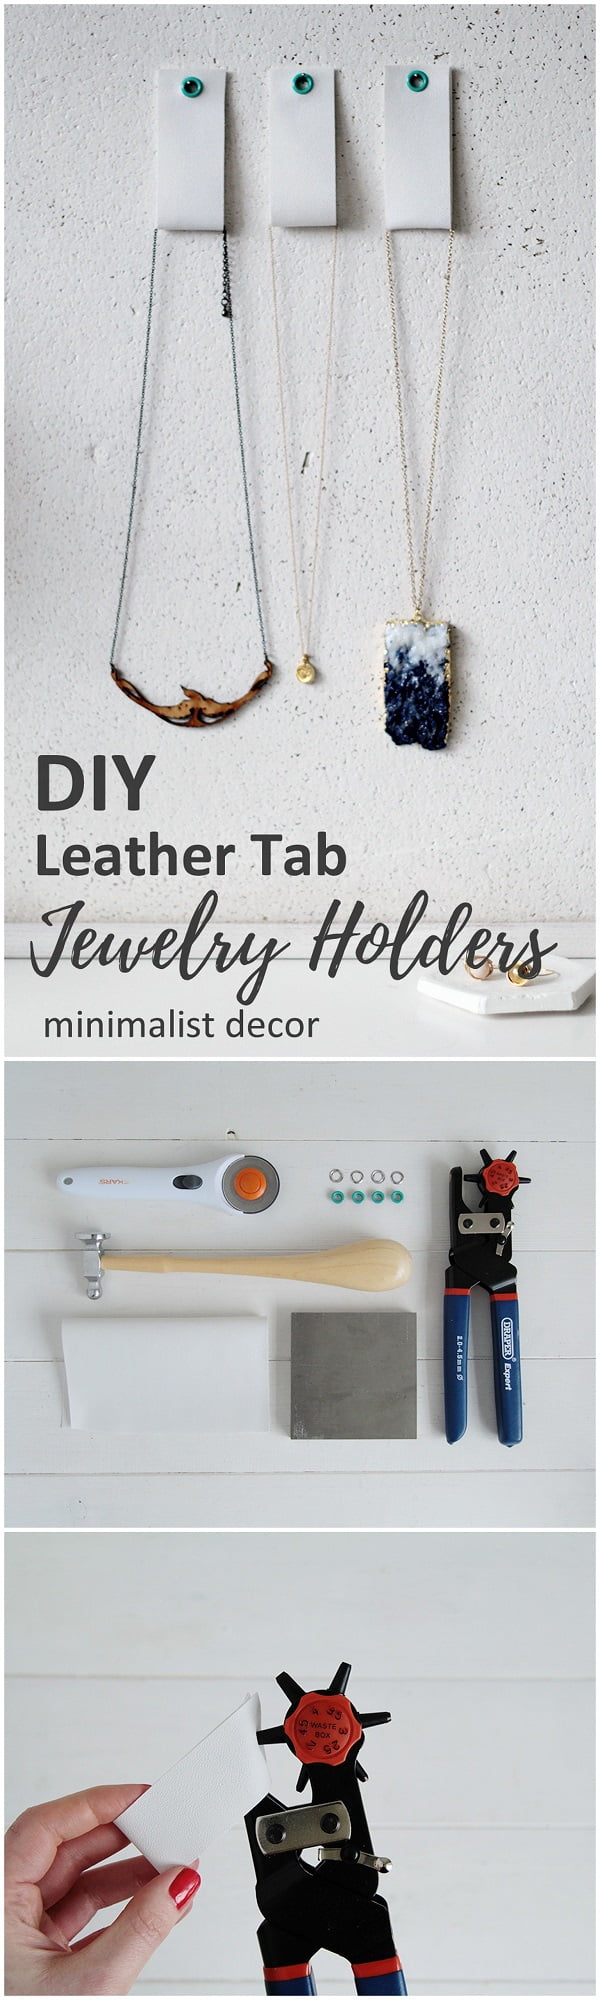 Check out this easy idea on how to make #DIY leather tab jewelry holders for minimalist #homedecor #crafts #project